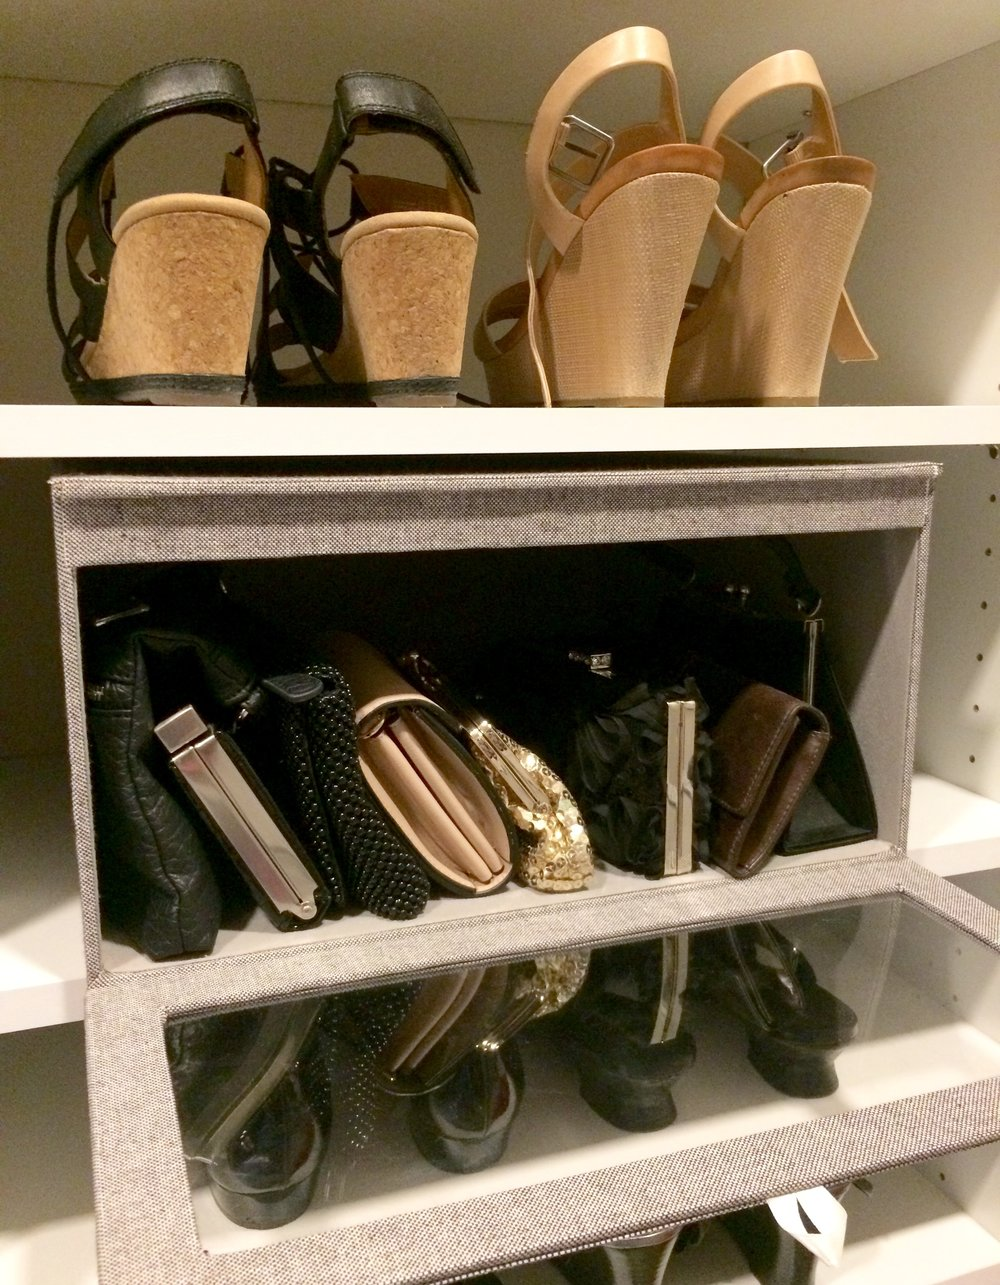 Transparent front-opening storage boxes are a beautiful way to store small handbags and other items that would otherwise be difficult to keep organized.